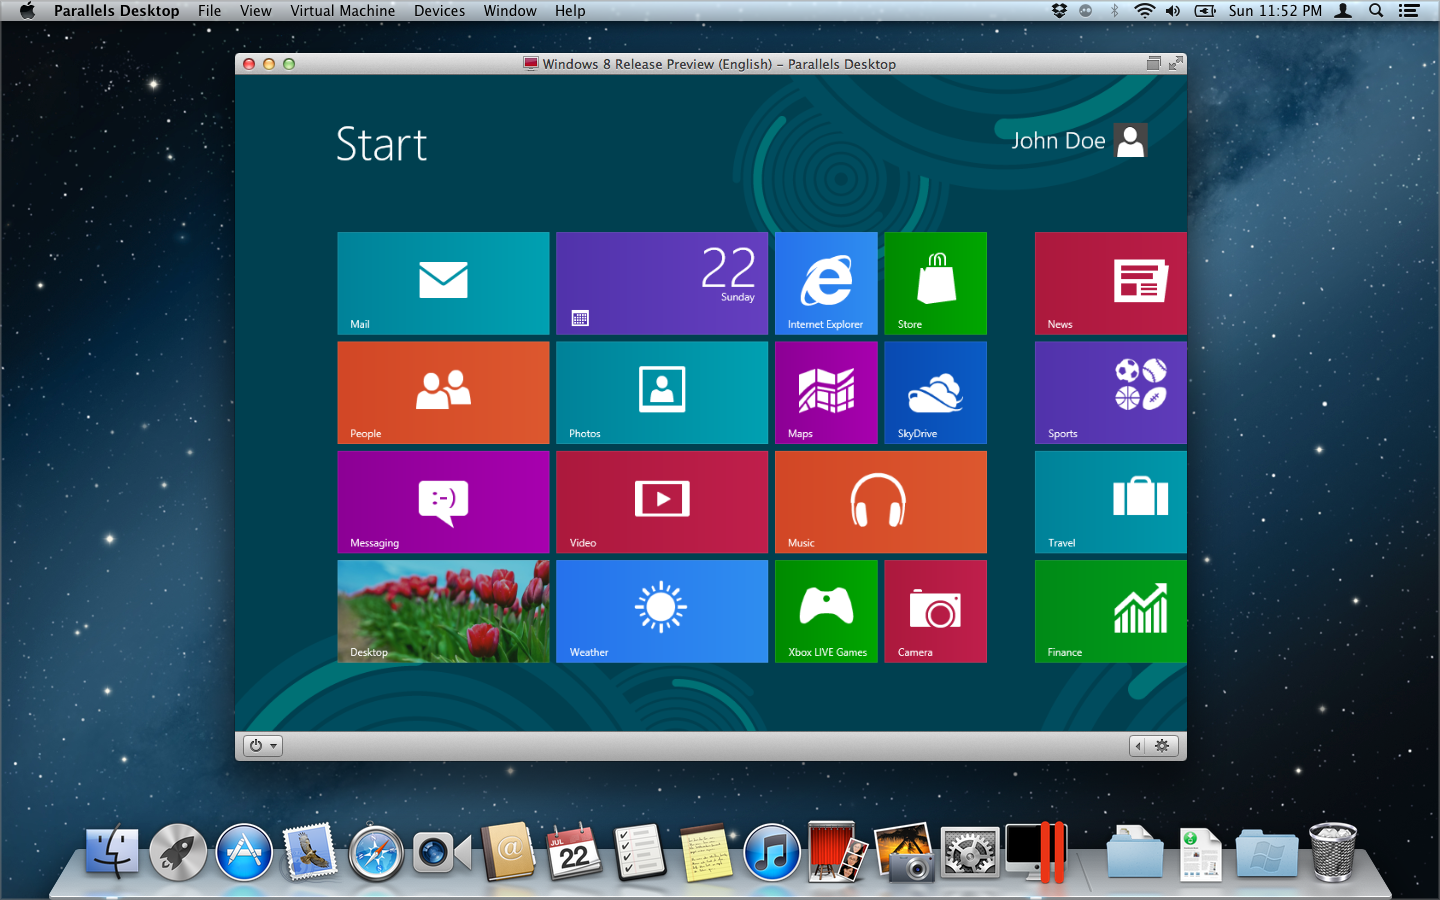 about using windows 8 with parallels desktop